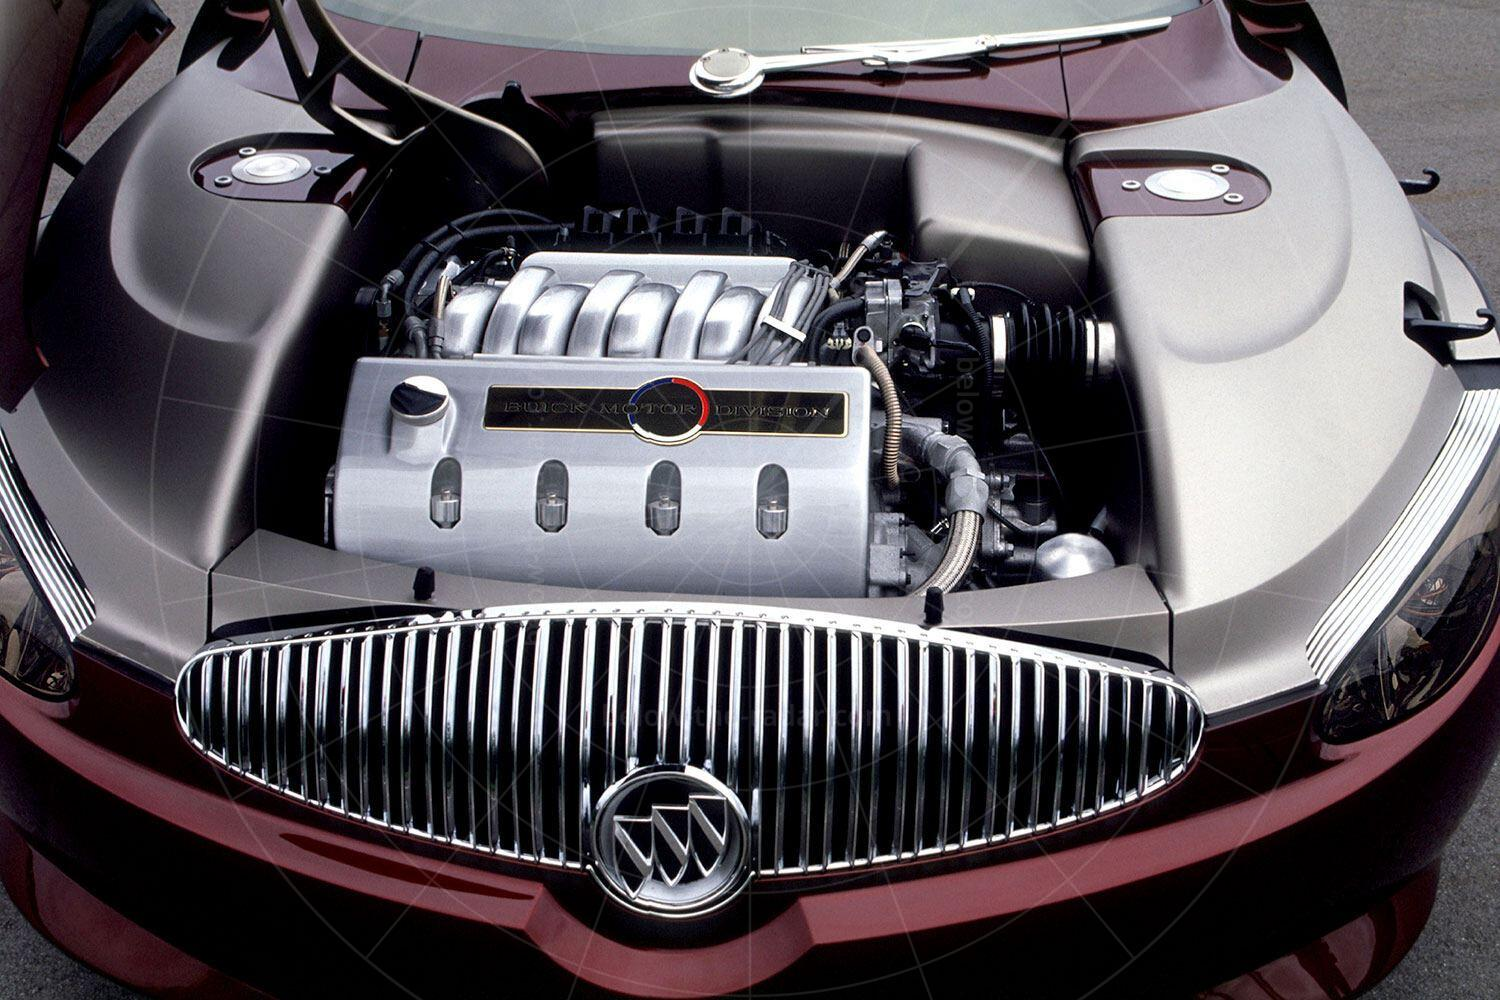 Buick LaCrosse concept engine bay Pic: Buick | Buick LaCrosse concept engine bay